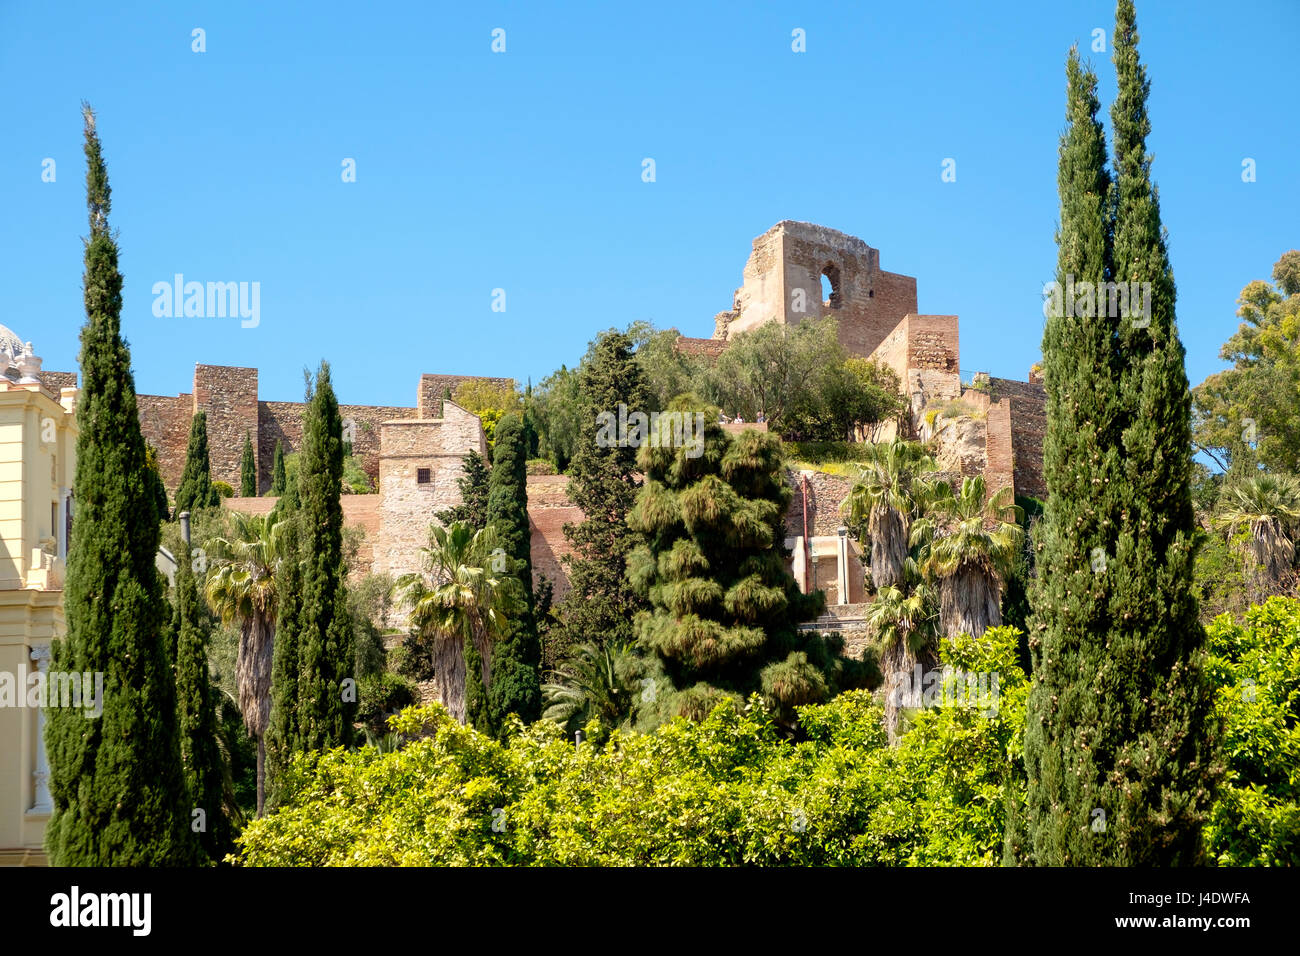 Looking through the trees of the Jardines de Pedro Luis Alonso at the Alcazaba of Malaga - Stock Image